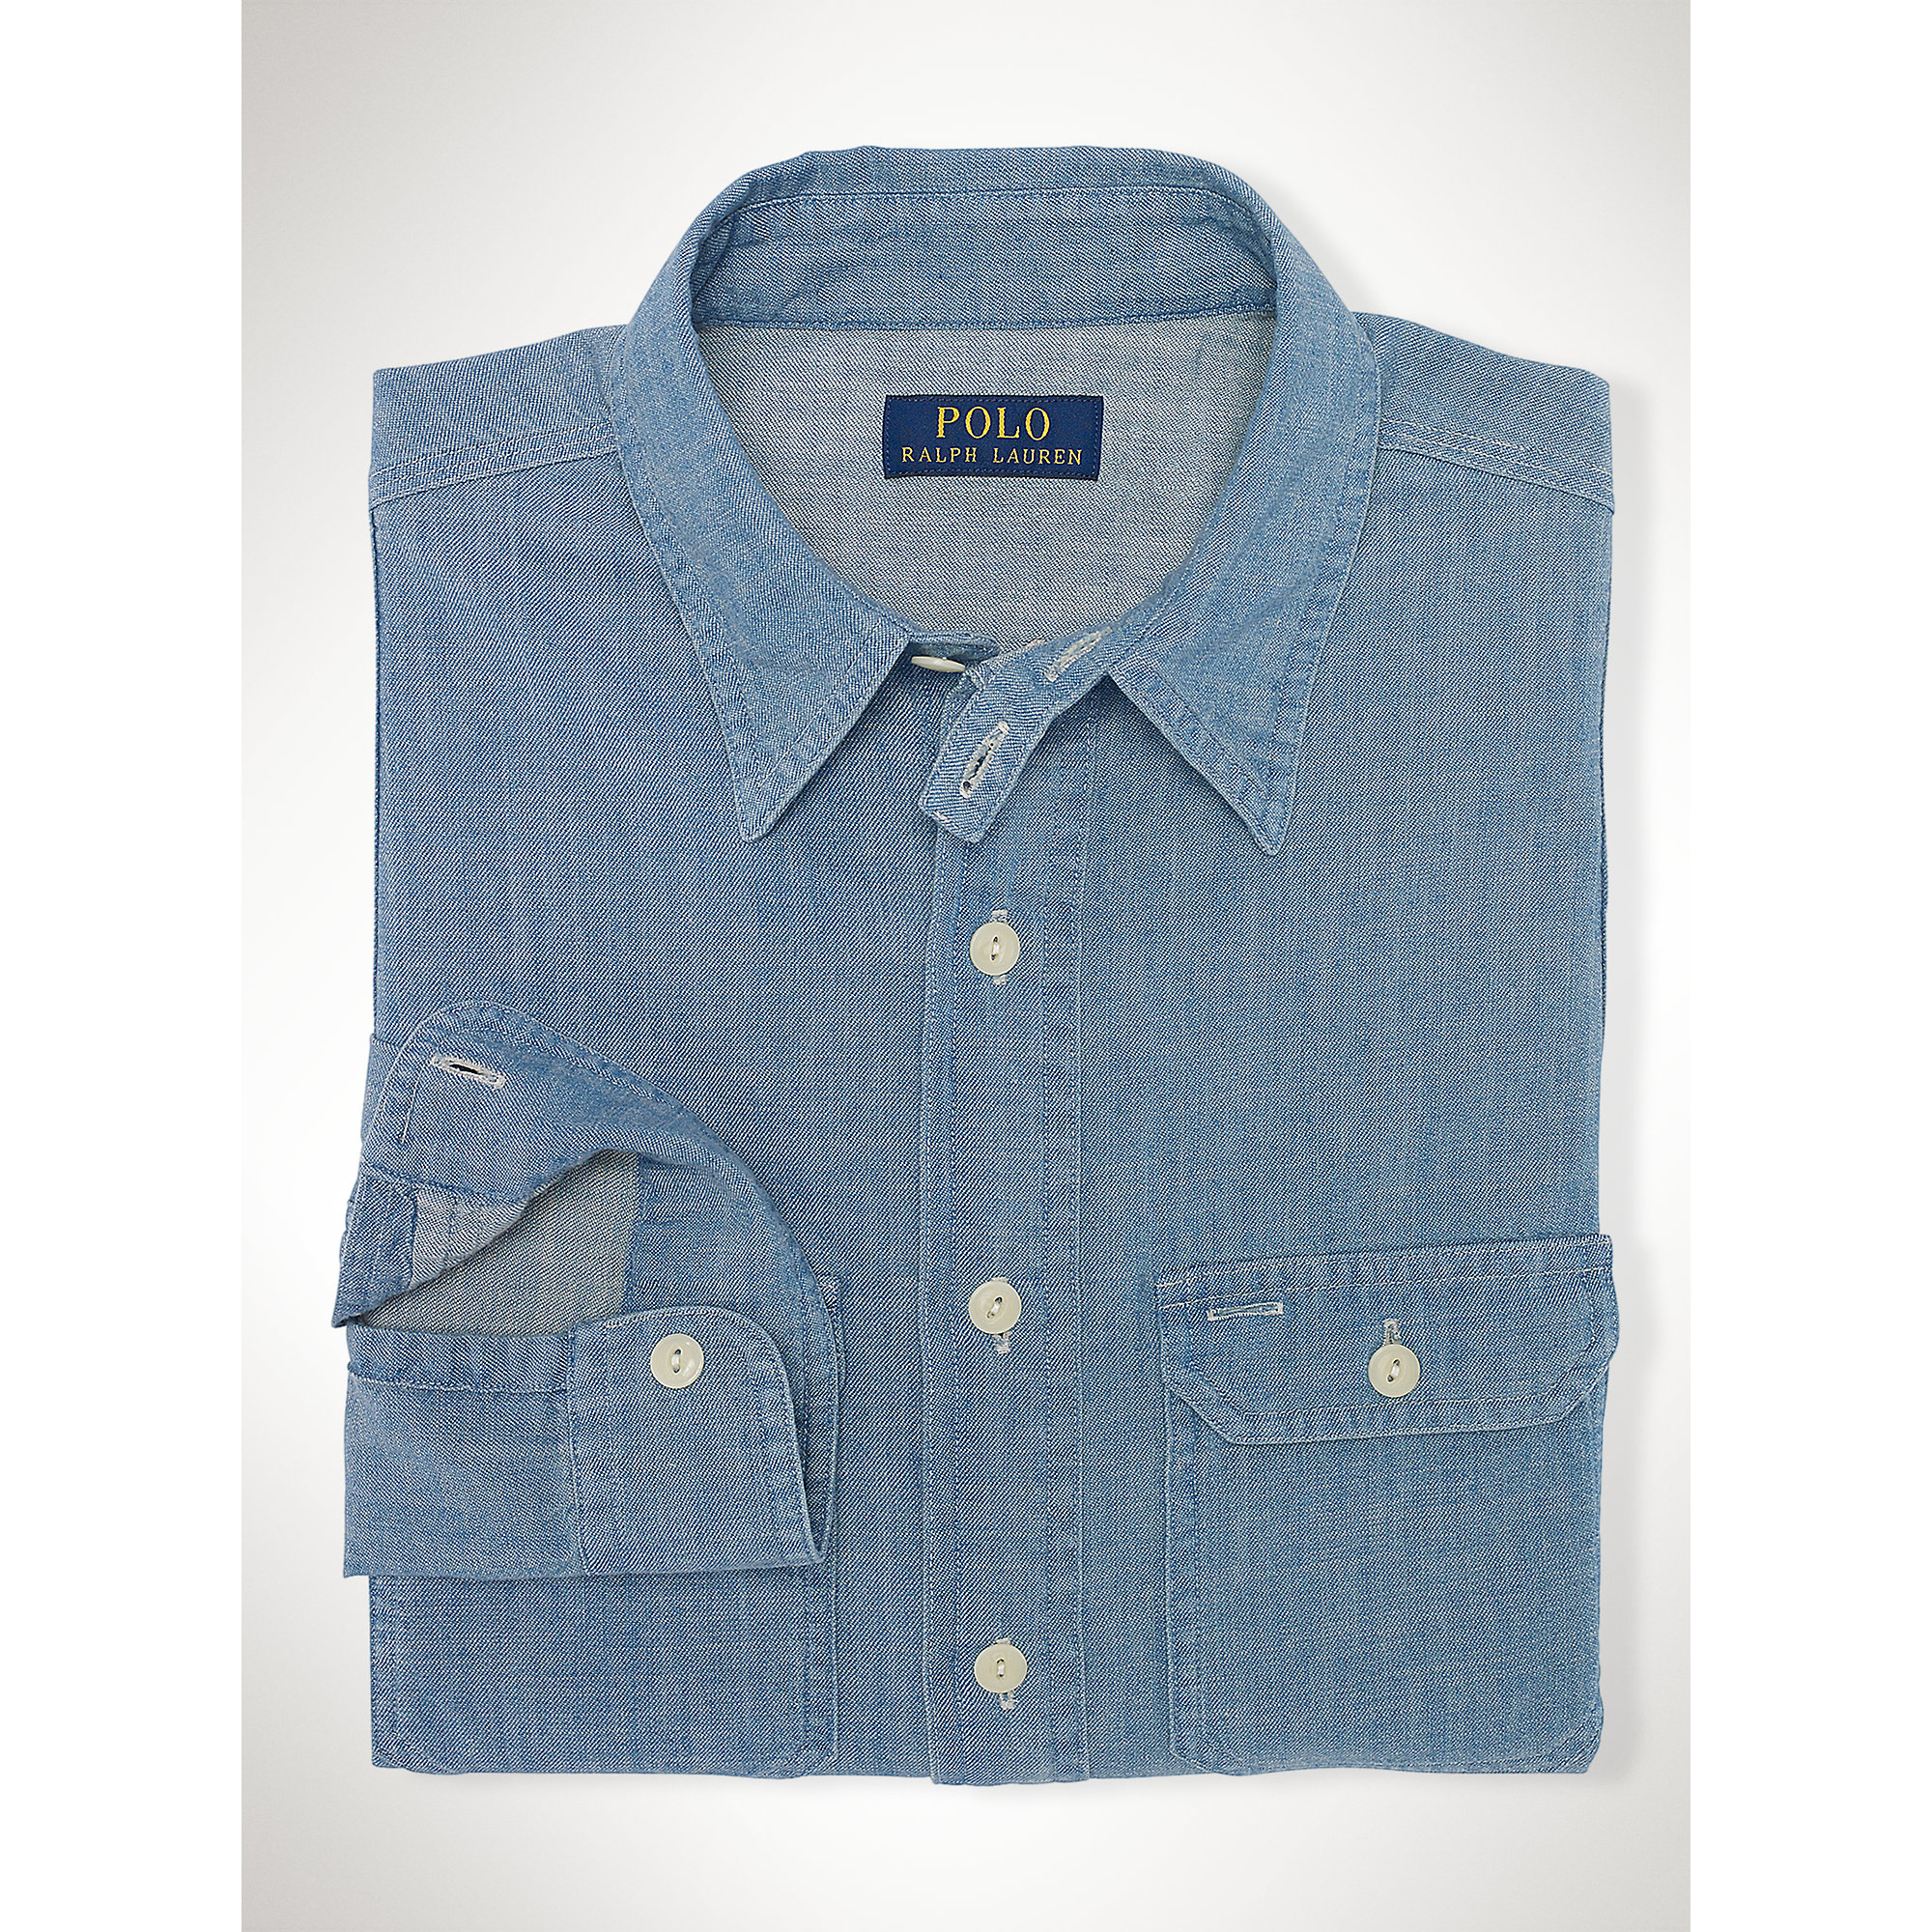 Polo Ralph Lauren Chambray Cotton Workshirt In Blue For